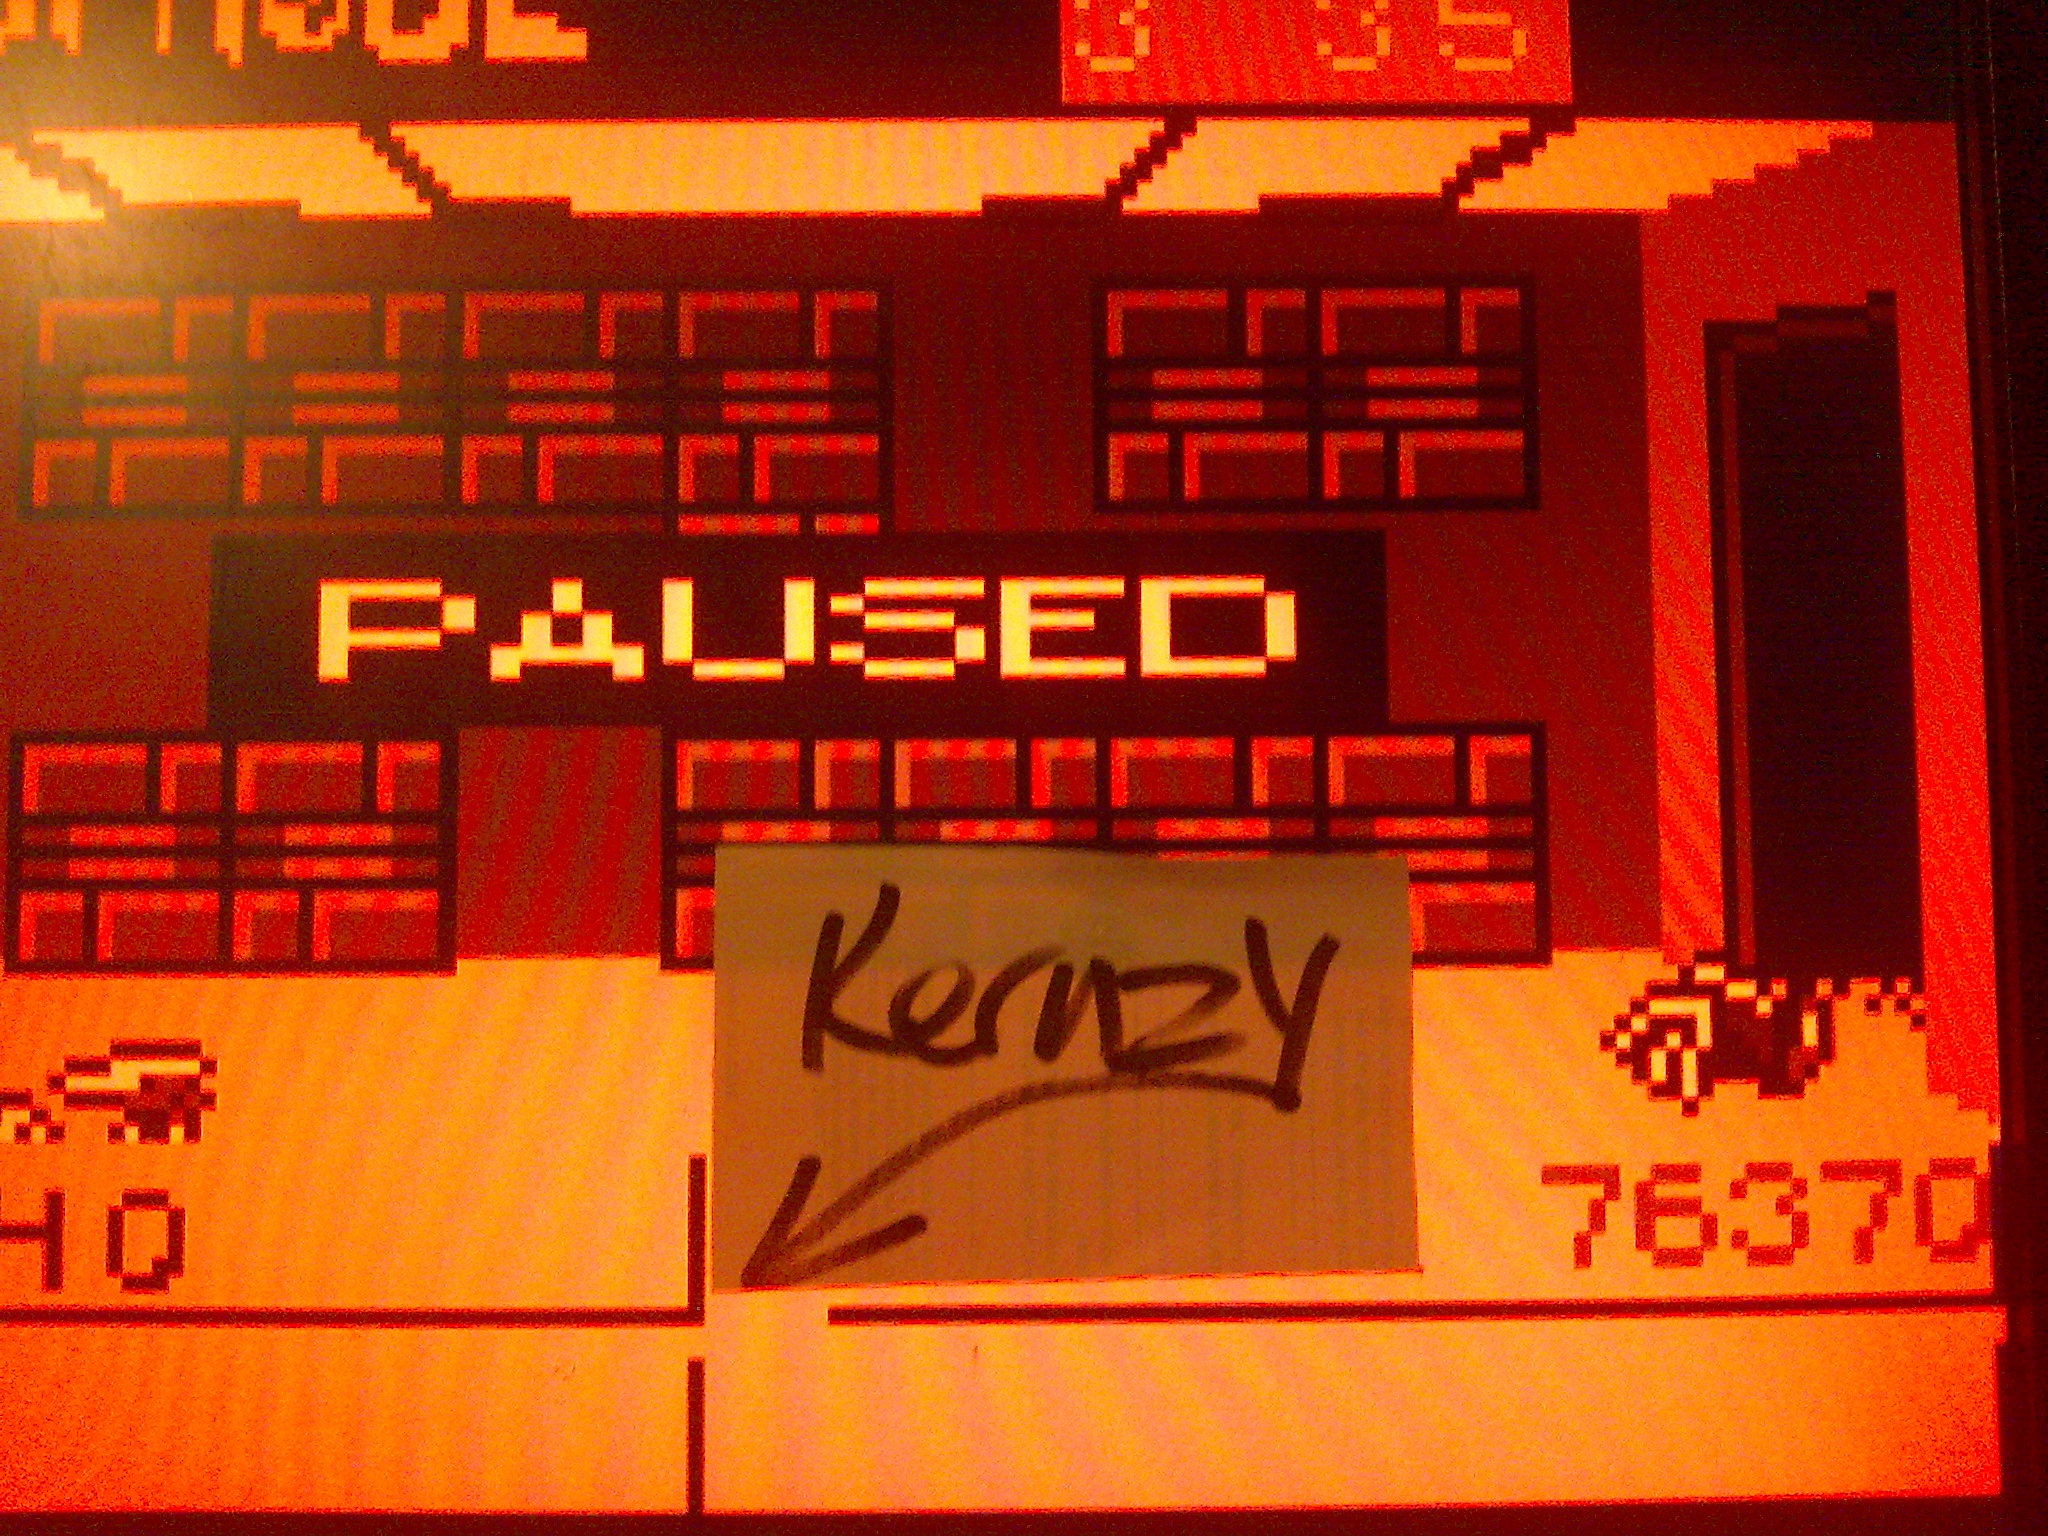 kernzy: Xenophobe (Atari Lynx Emulated) 76,370 points on 2014-10-19 01:11:59